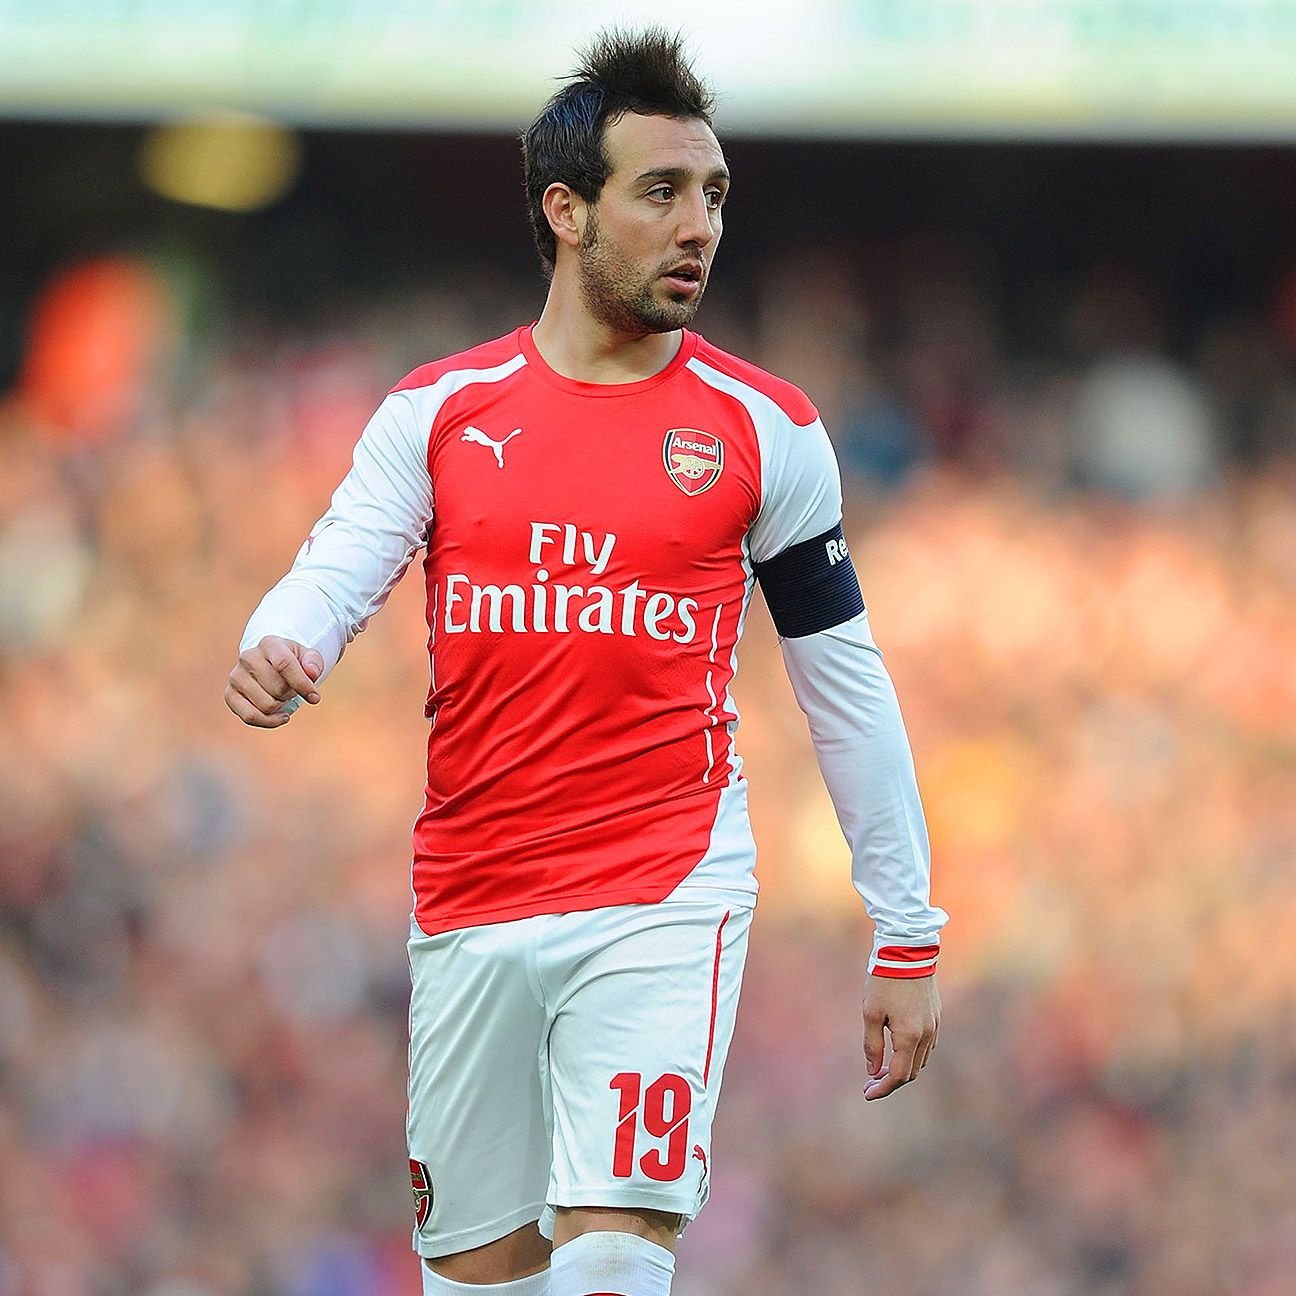 Santi Cazorla's enthusiasm for the game is widely appreciated by the Arsenal faithful.